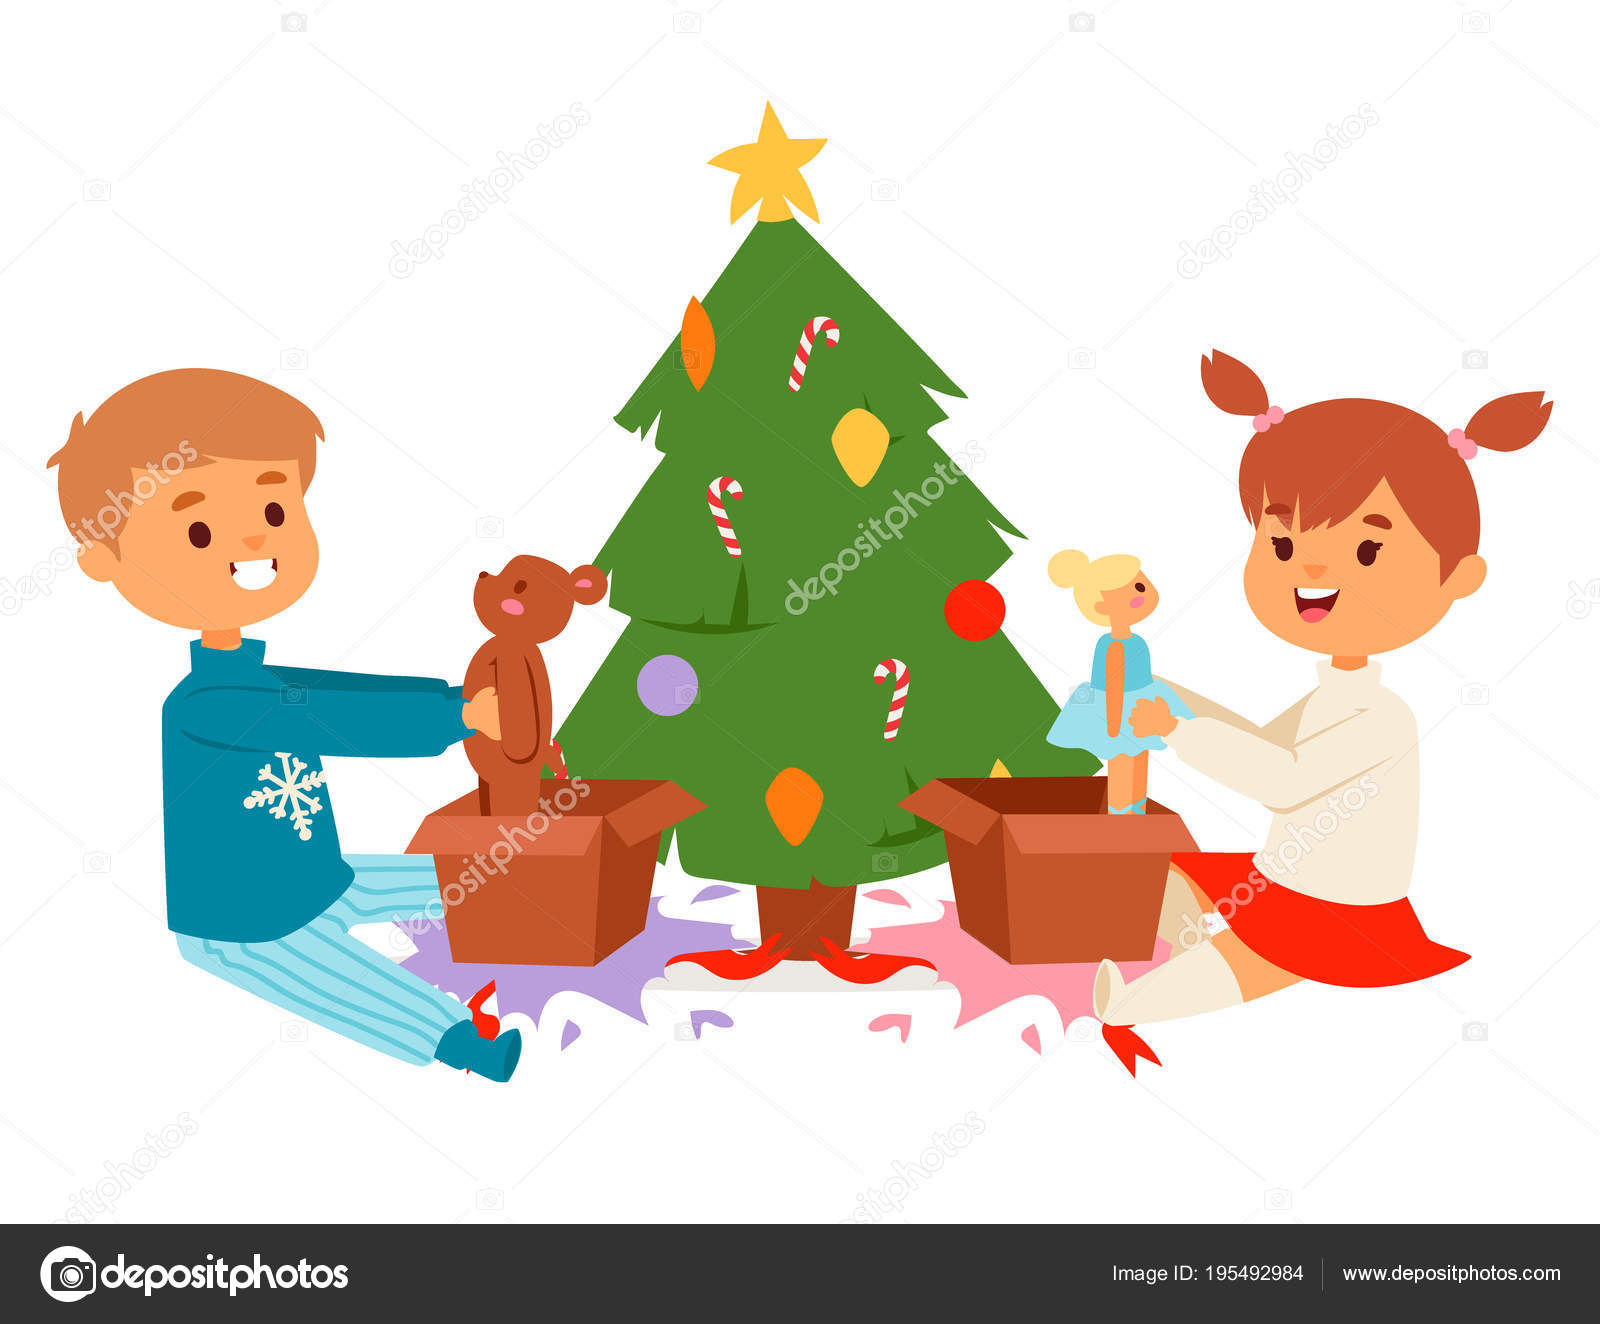 Images Christmas Kid Christmas Kids Vector Character Playing Winter Games Winter Children Holidays Christmas Tree Cartoon New Year Xmas Kid Stock Vector C Adekvat 195492984 Choose from 290+ cartoon christmas tree graphic resources and download in the form of png, eps, ai or psd. https depositphotos com 195492984 stock illustration christmas kids vector character playing html